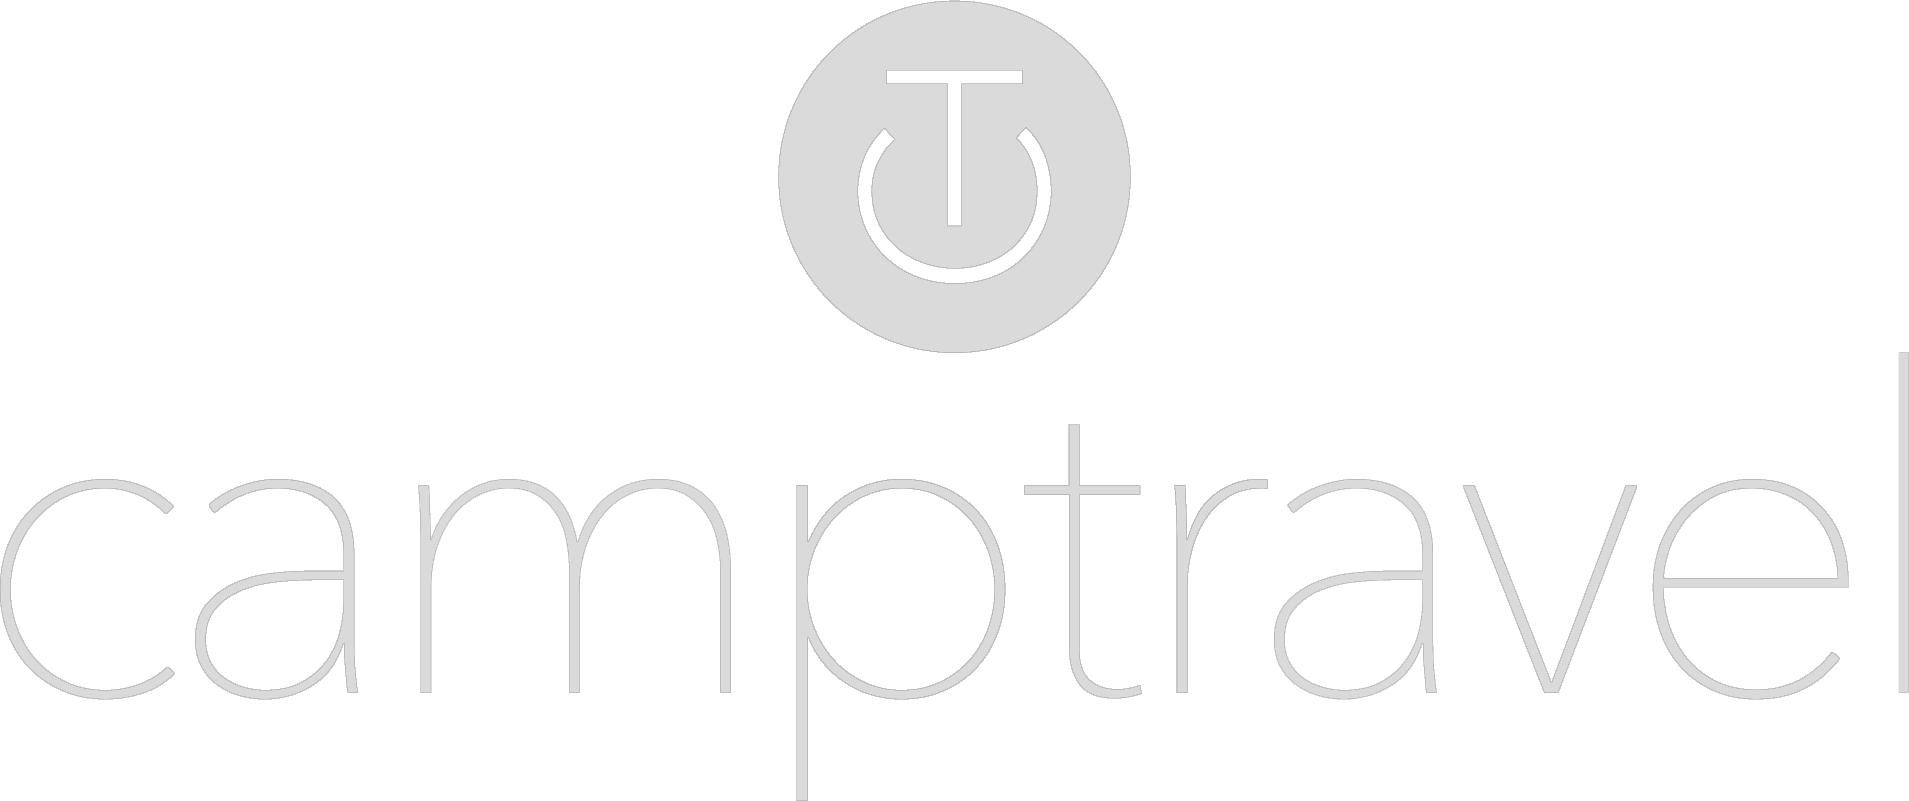 Camptravel logo 2 light hr